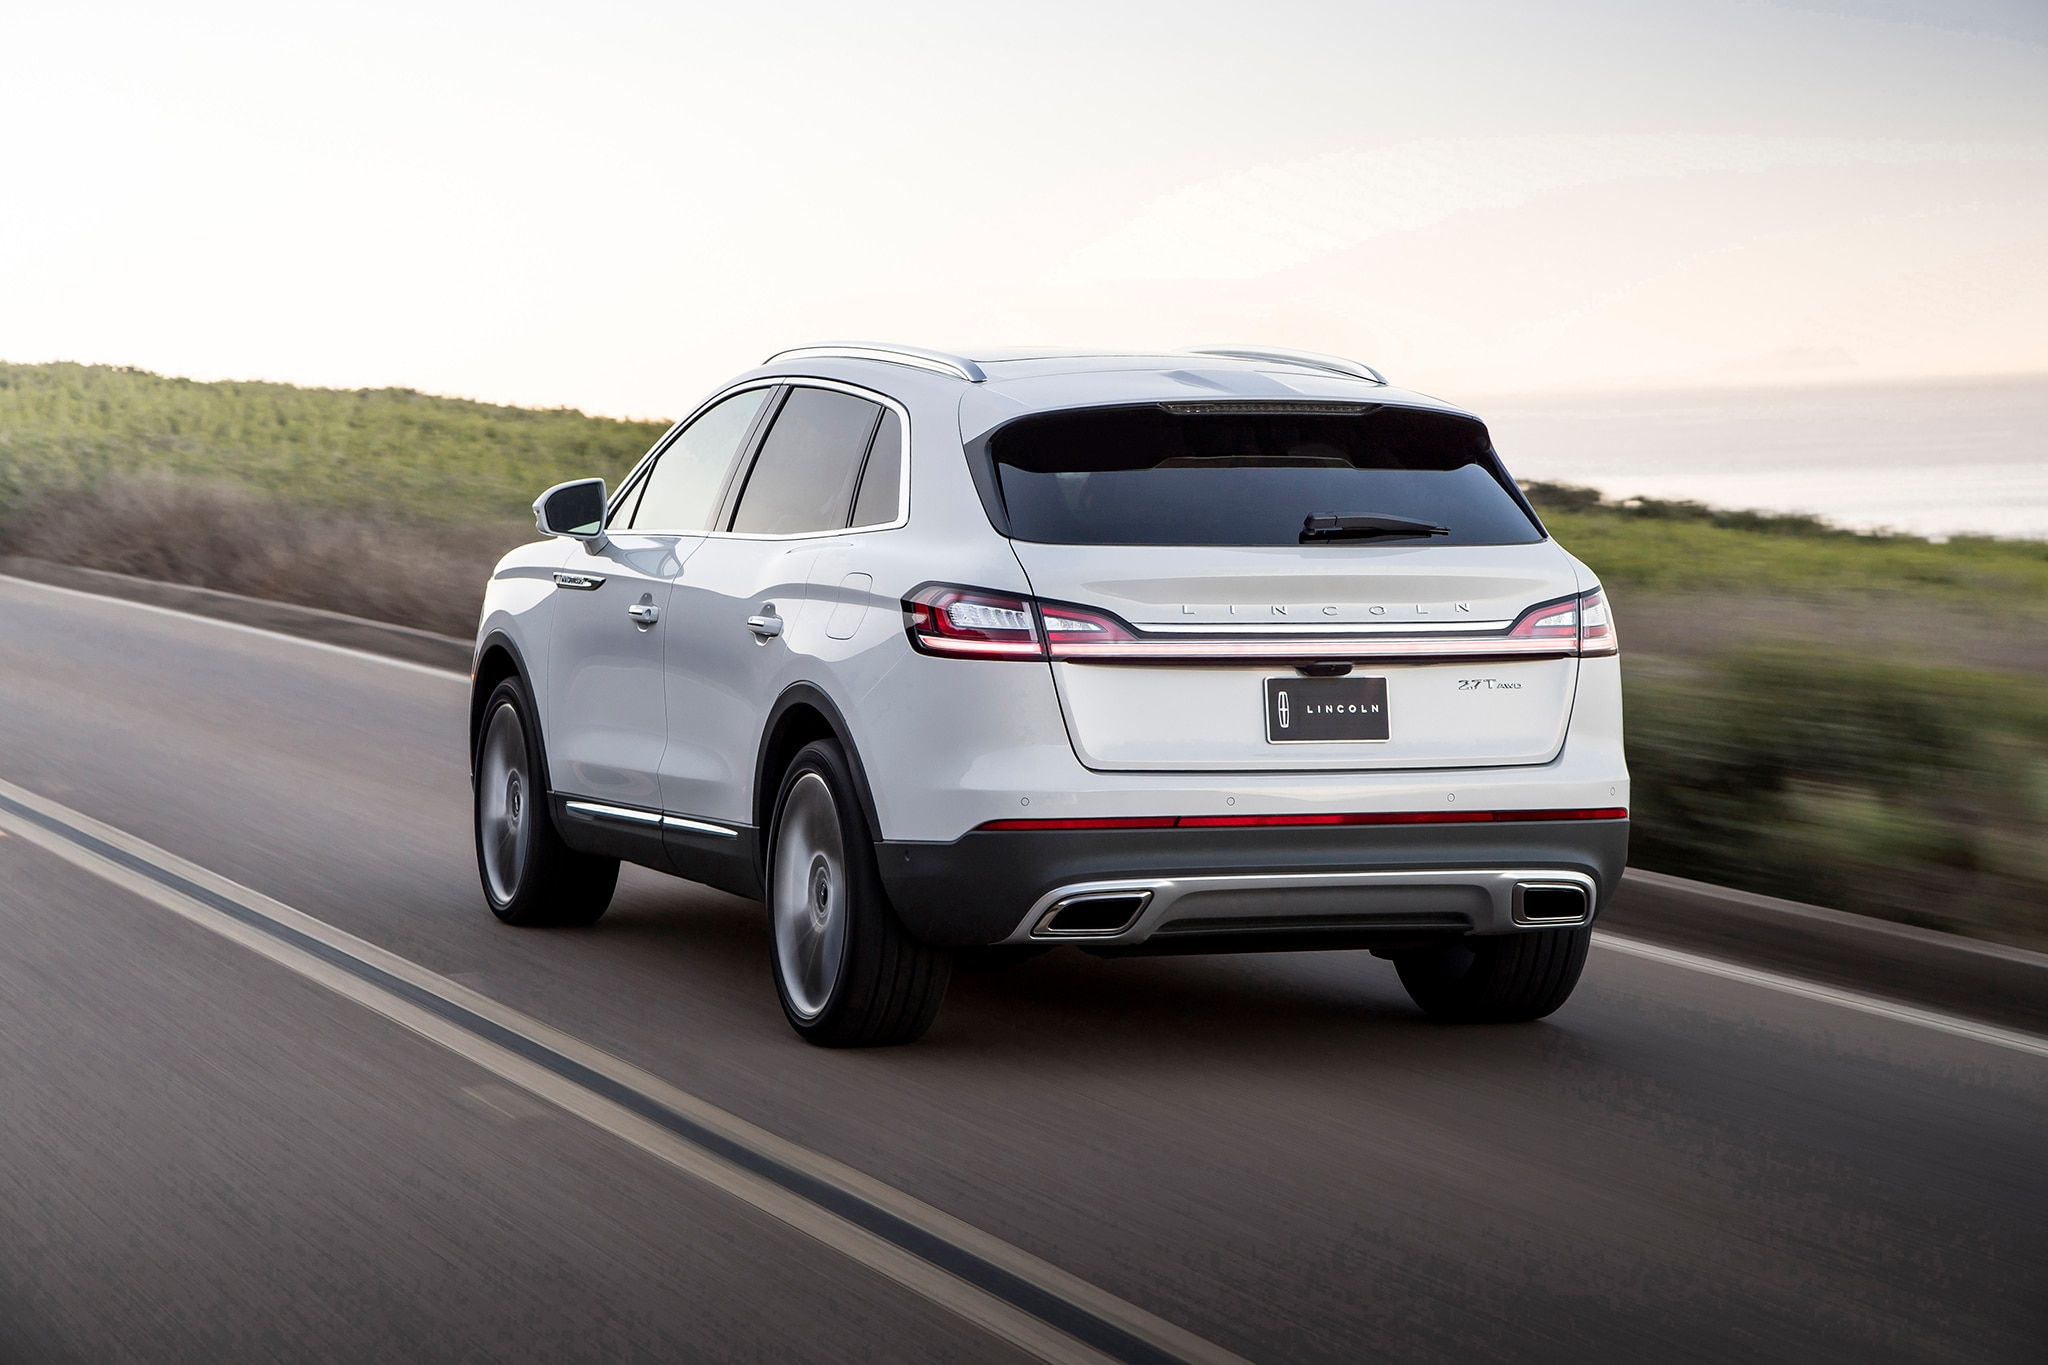 2019 Lincoln Mkx Upcoming Cars 2020